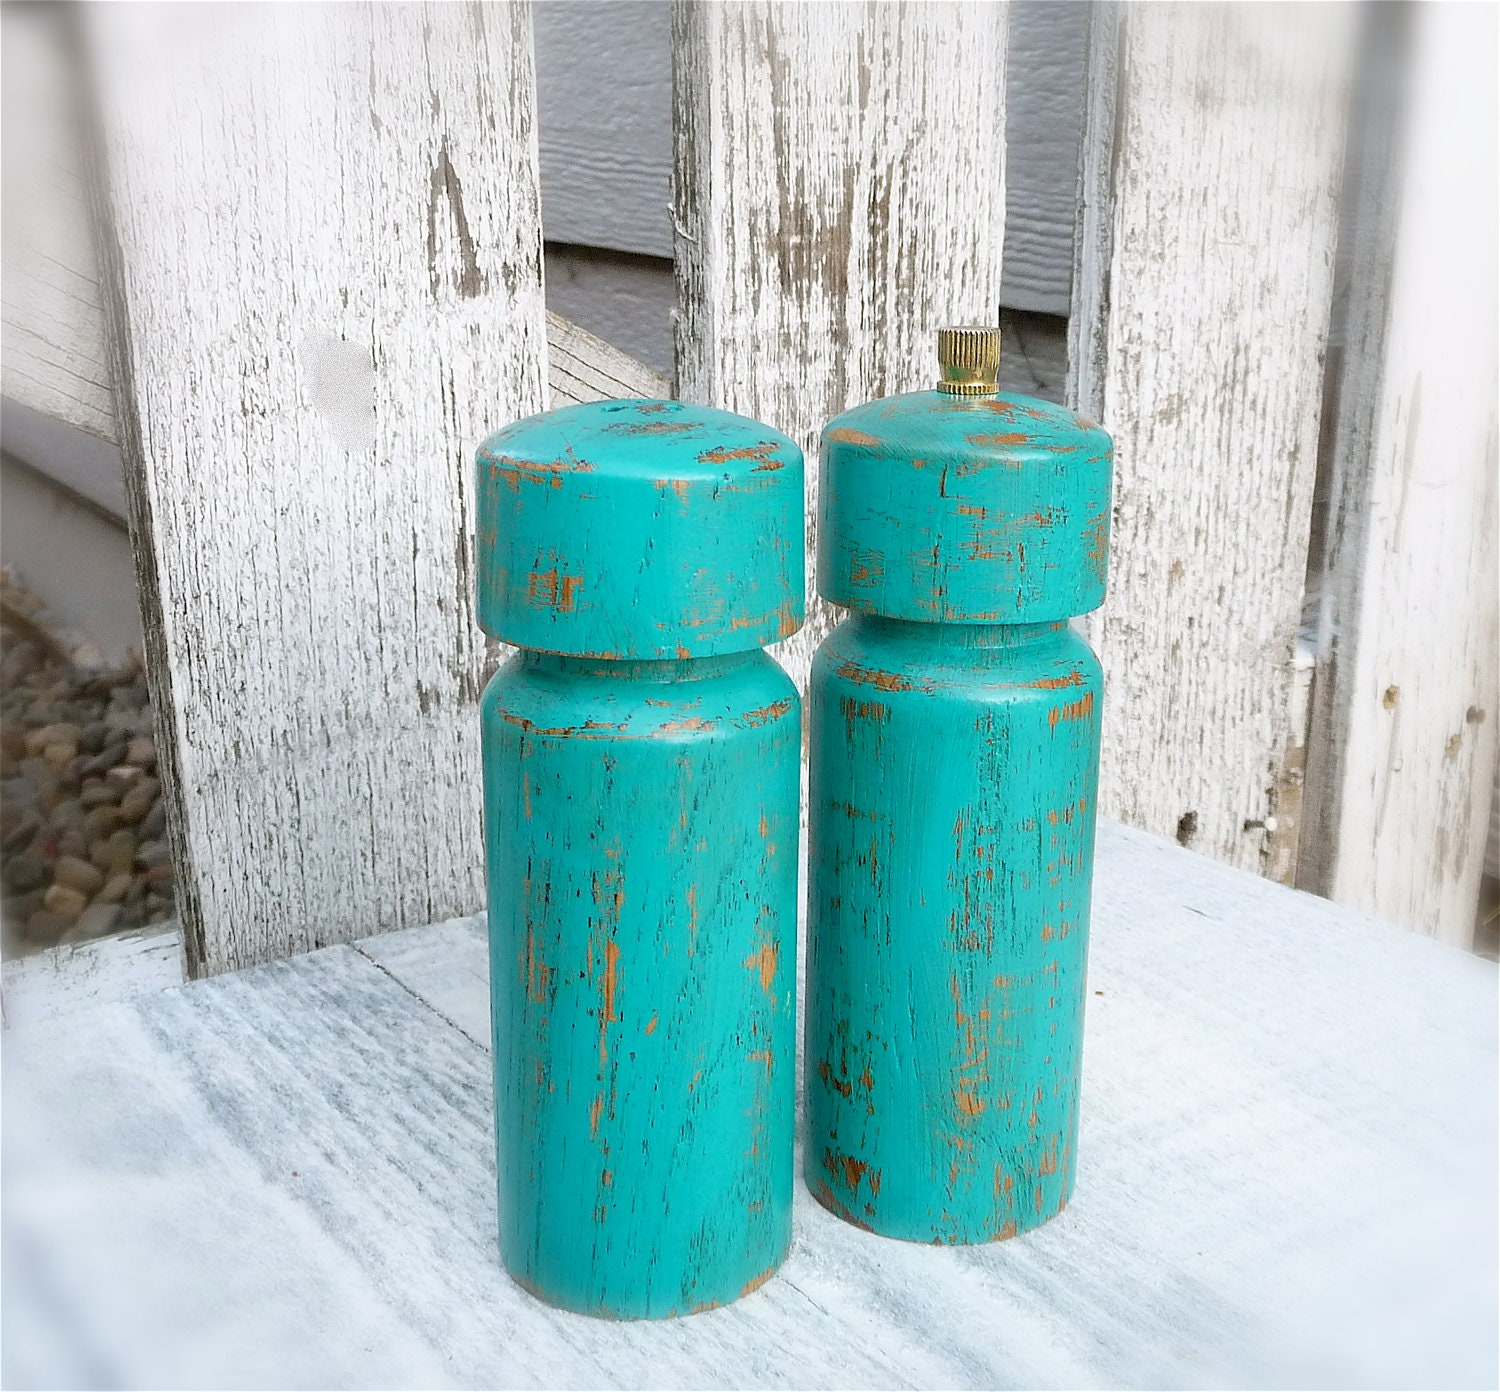 COLORFUL SHABBY CHIC Salt and Pepper Mill Set, Medium Size in Bright Teal / Turquoise